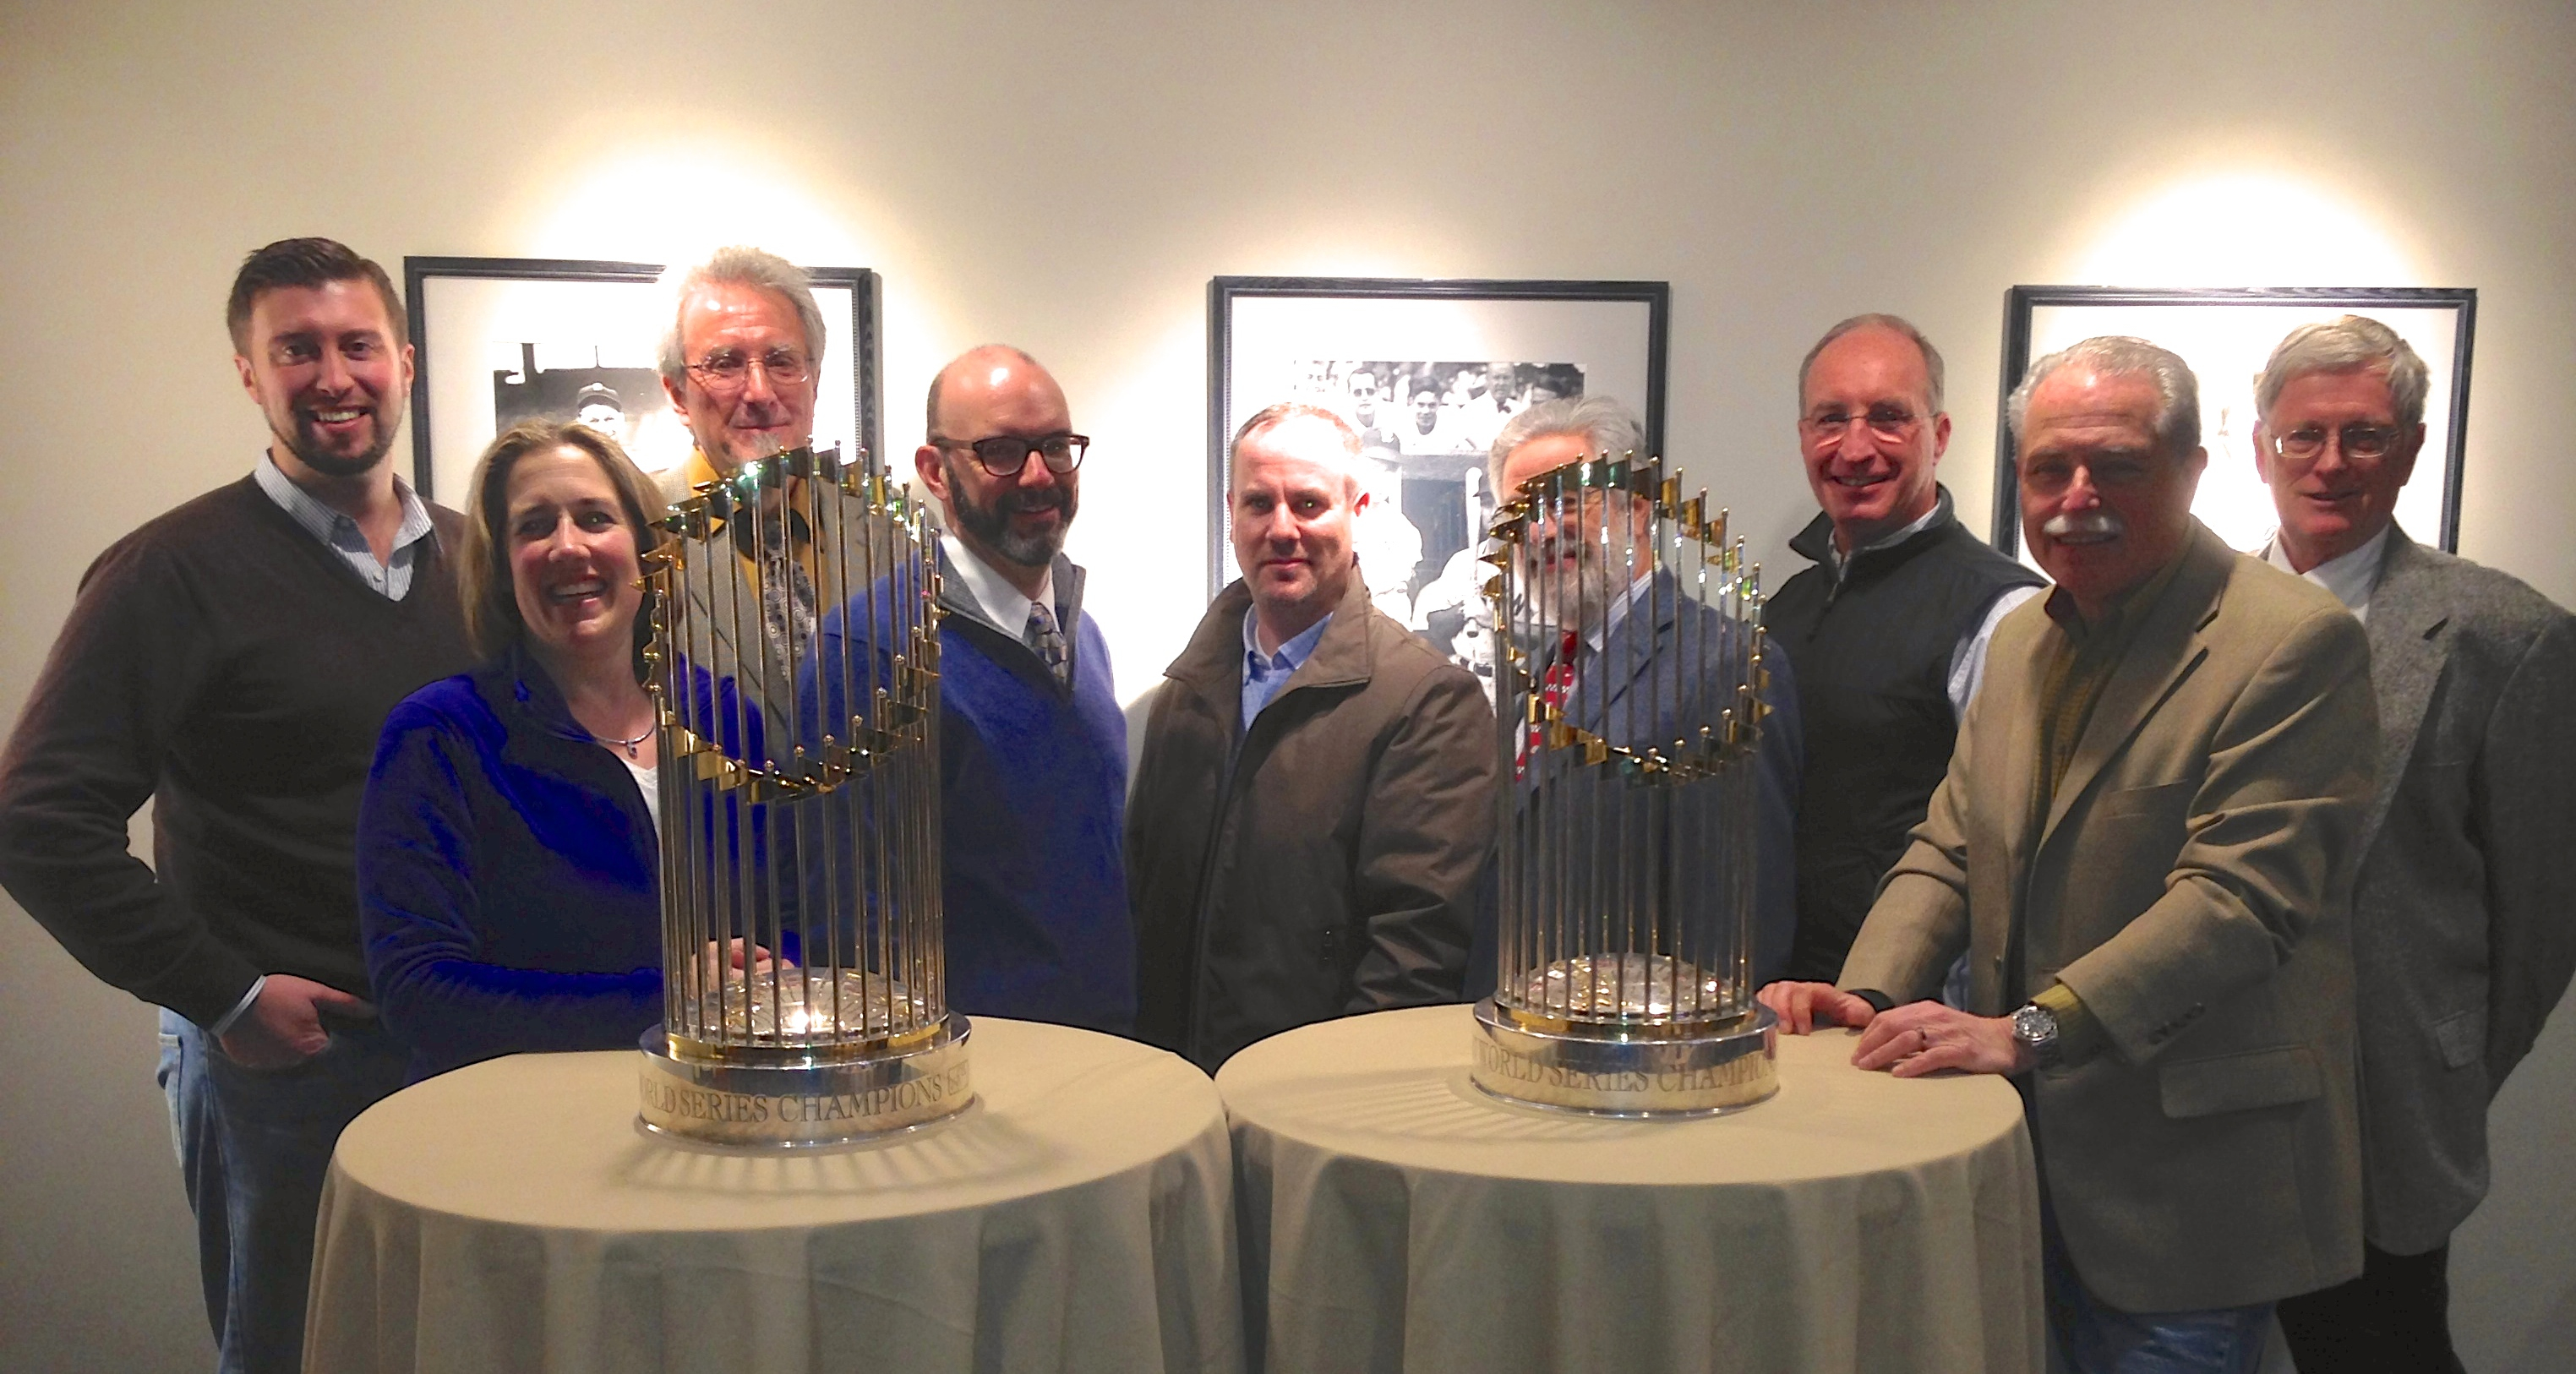 Courtesy once again of the Ford Motor Company, NEMPA members gathered on Thursday evening (January 16) for the traditional Boston auto show dinner in John Henry's suite at fabled Fenway Park. Shiny table decoration No. 3 was on tour somewhere in Red Sox Nation.